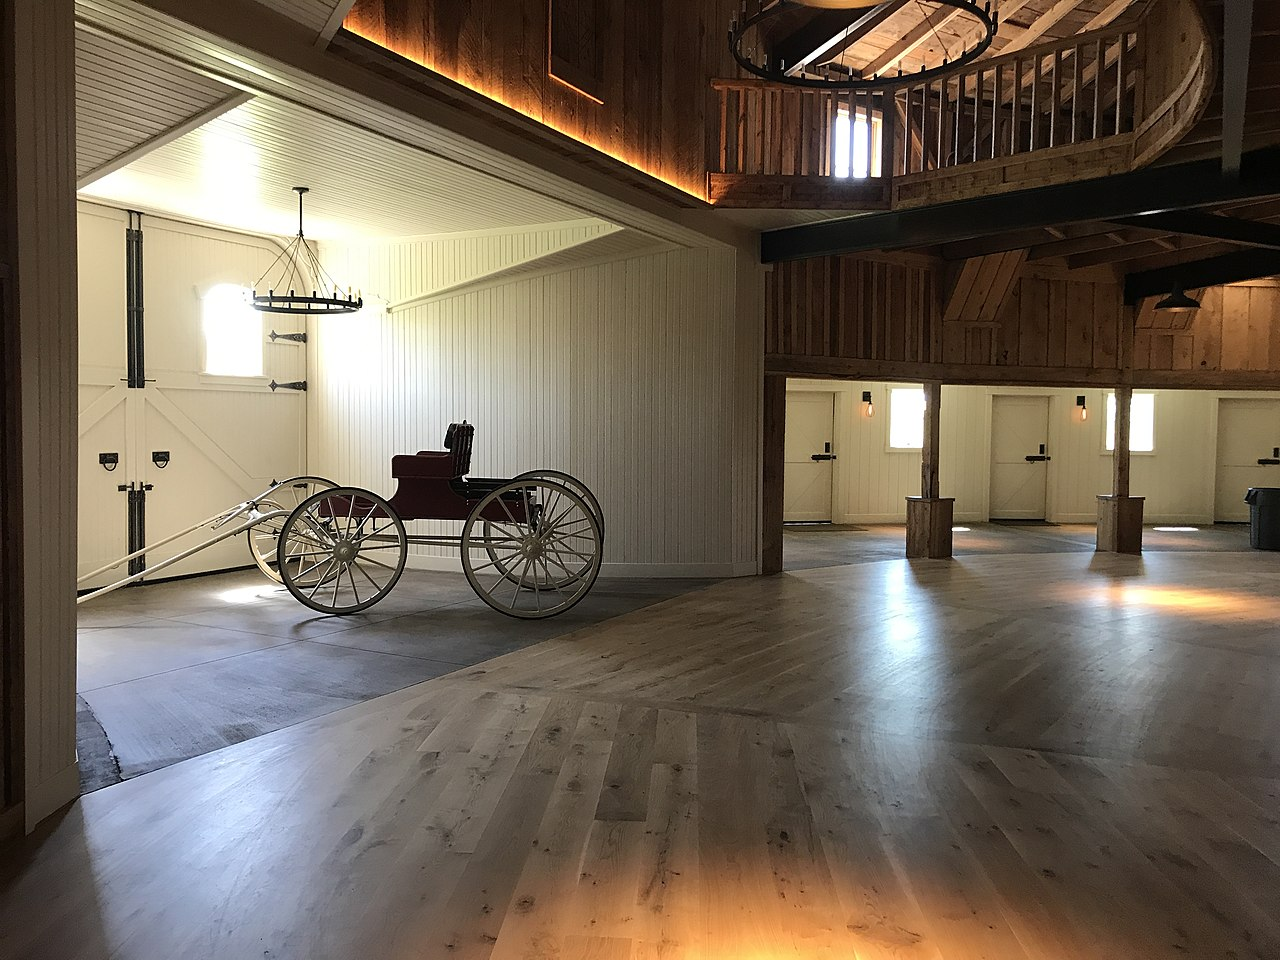 The barn is a popular wedding and event venue.